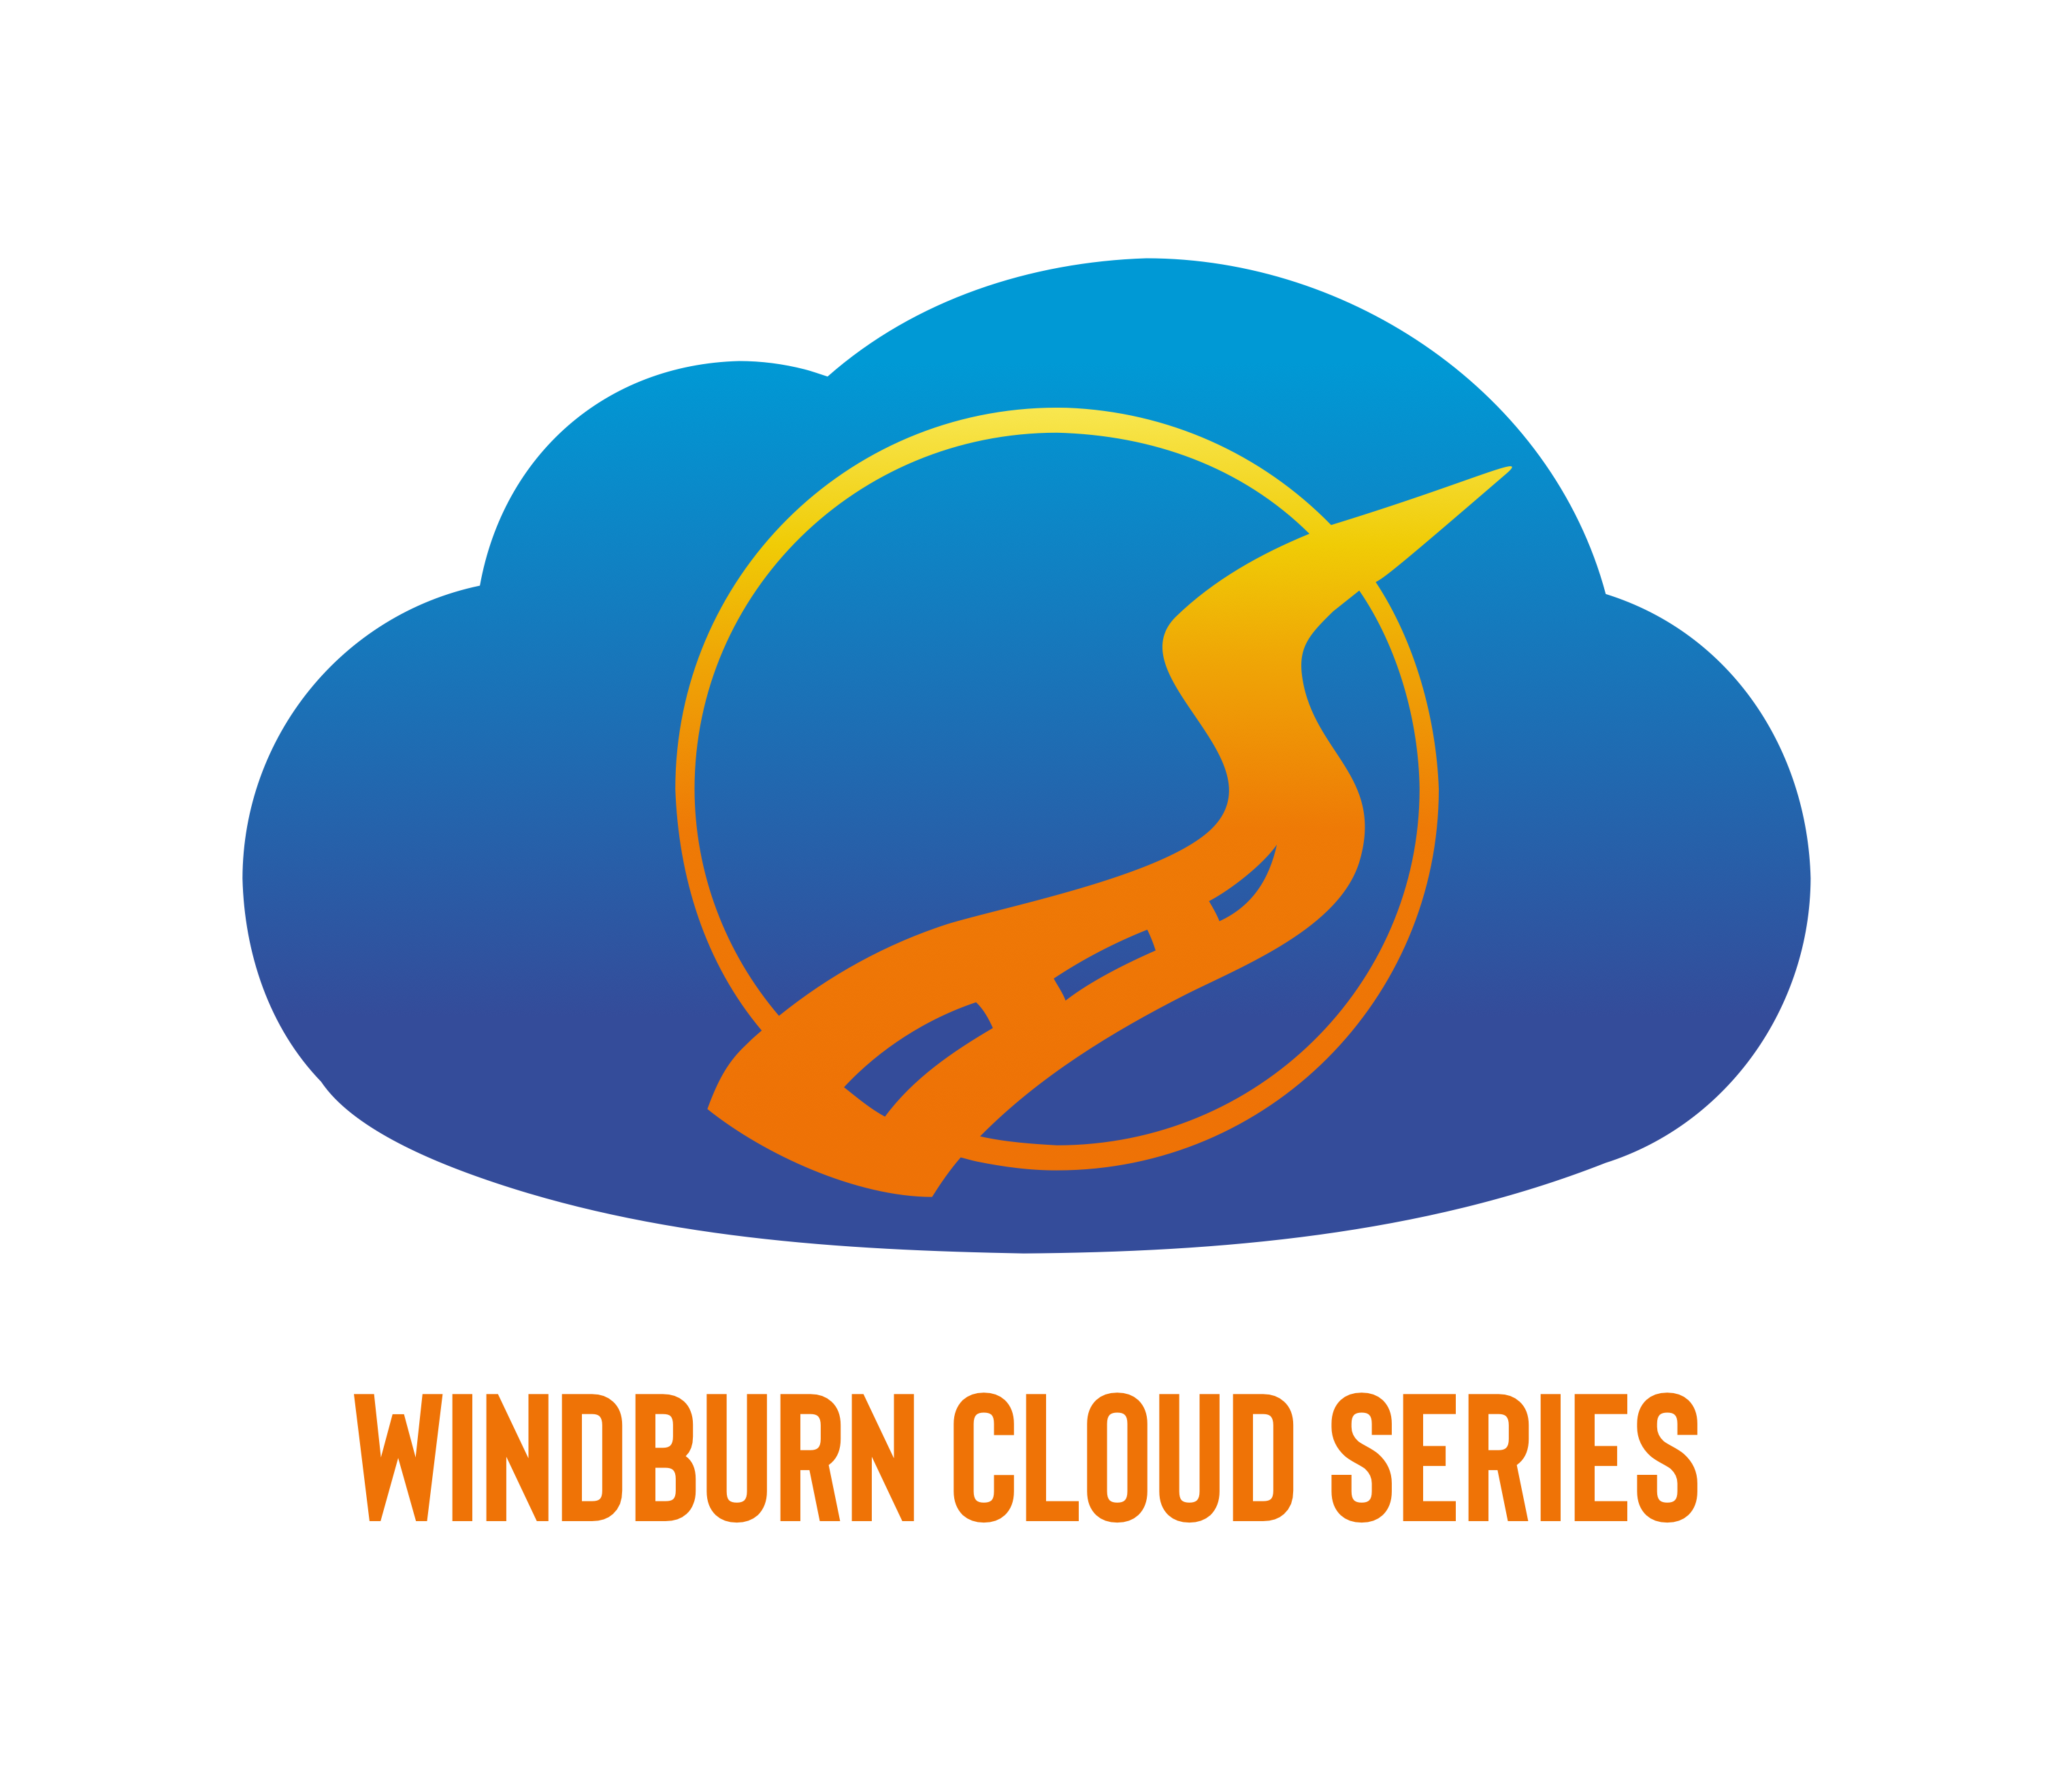 Windburn Cloud Series